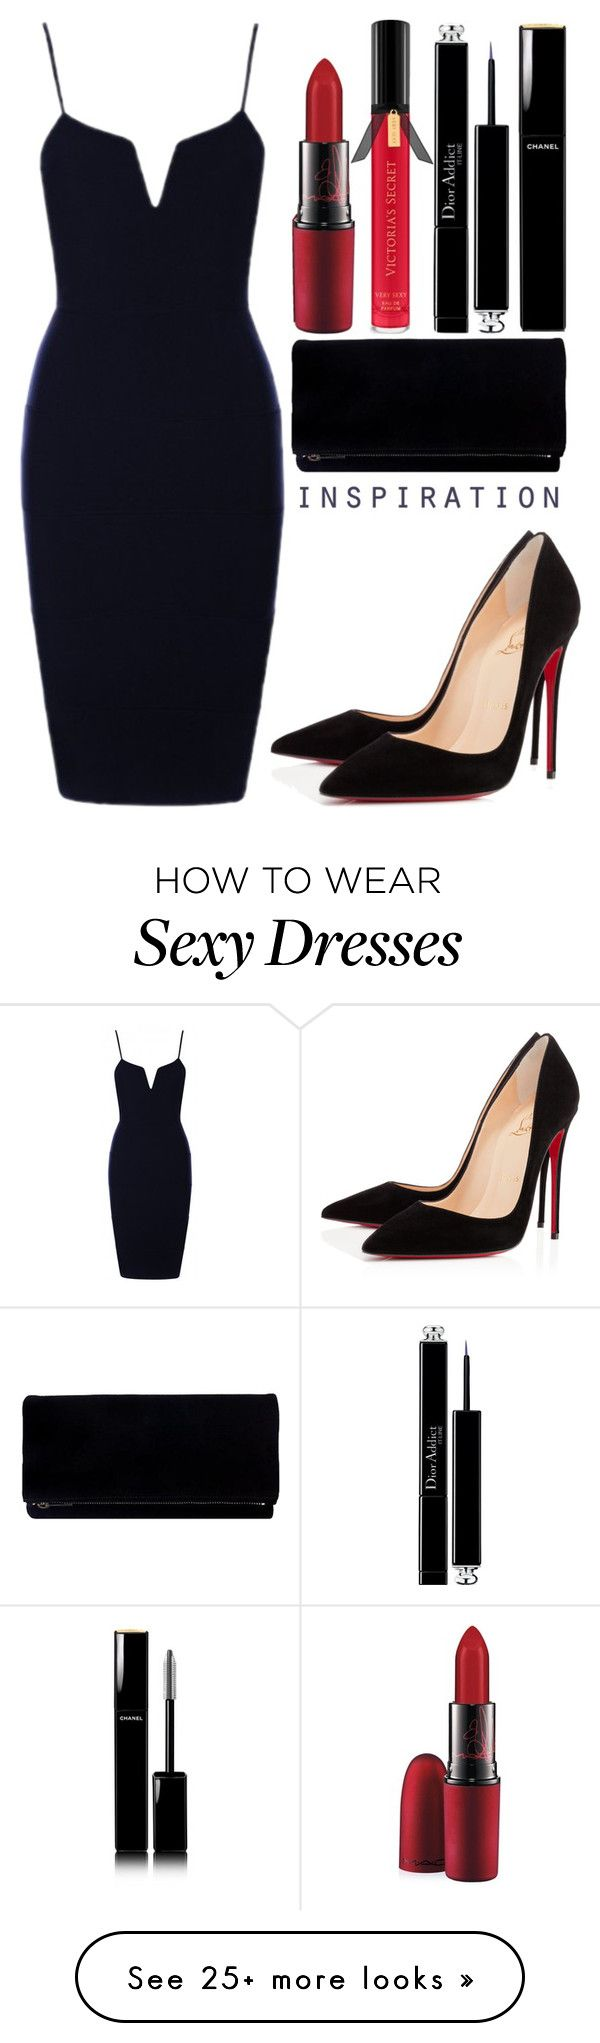 """""""Red Lips"""" by sad11 on Polyvore featuring Christian Louboutin, MAC Cosmetics, Chanel, Christian Dior and Victoria's Secret"""